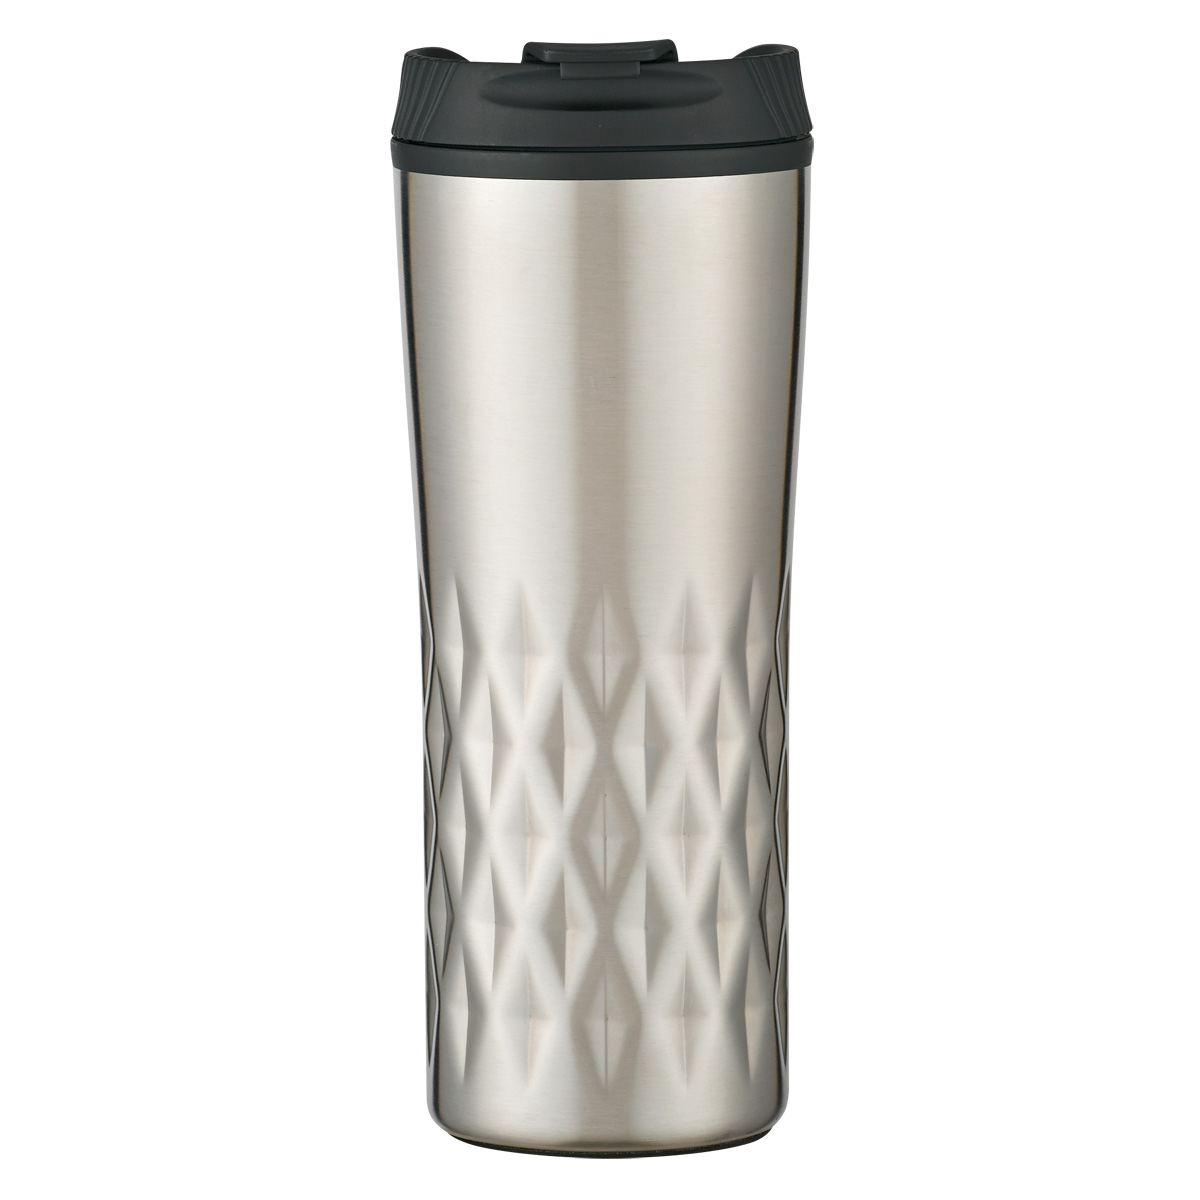 #CM 5760 - 16 Oz. Stainless Steel Diamond Tumbler